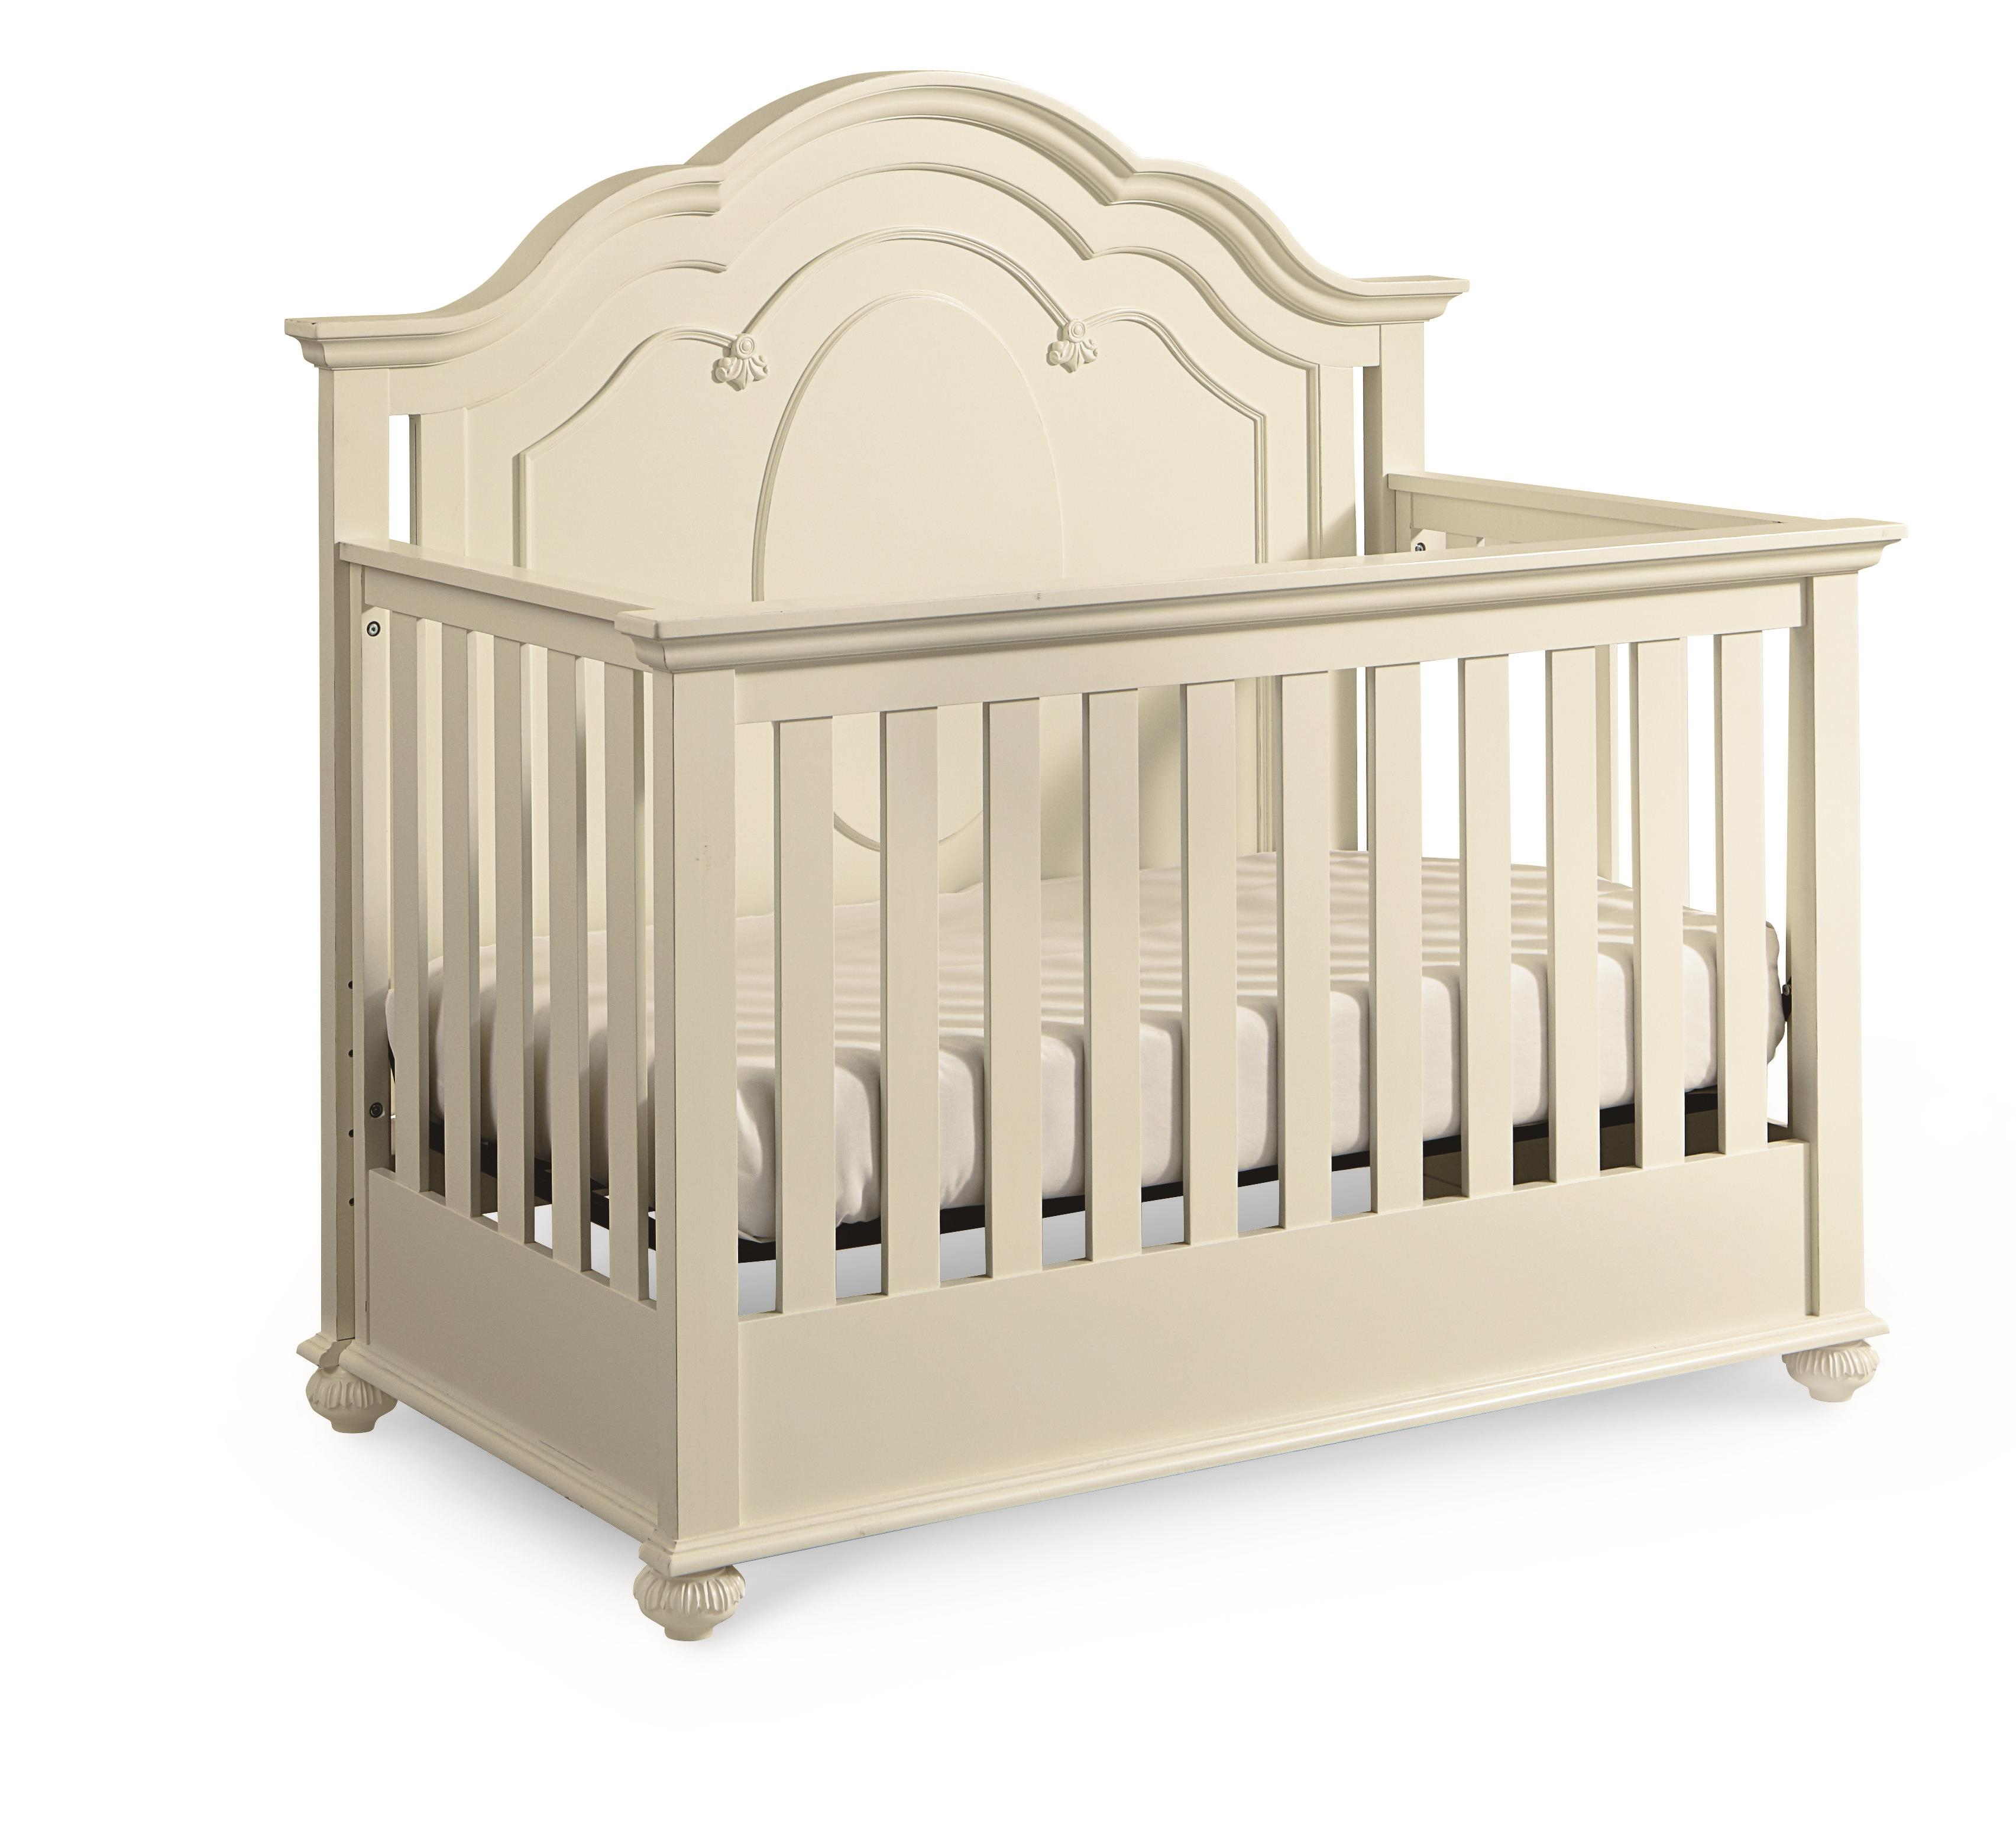 Legacy Classic Kids Charlotte Grow With Me Convertible Crib  - Item Number: 3850-8900